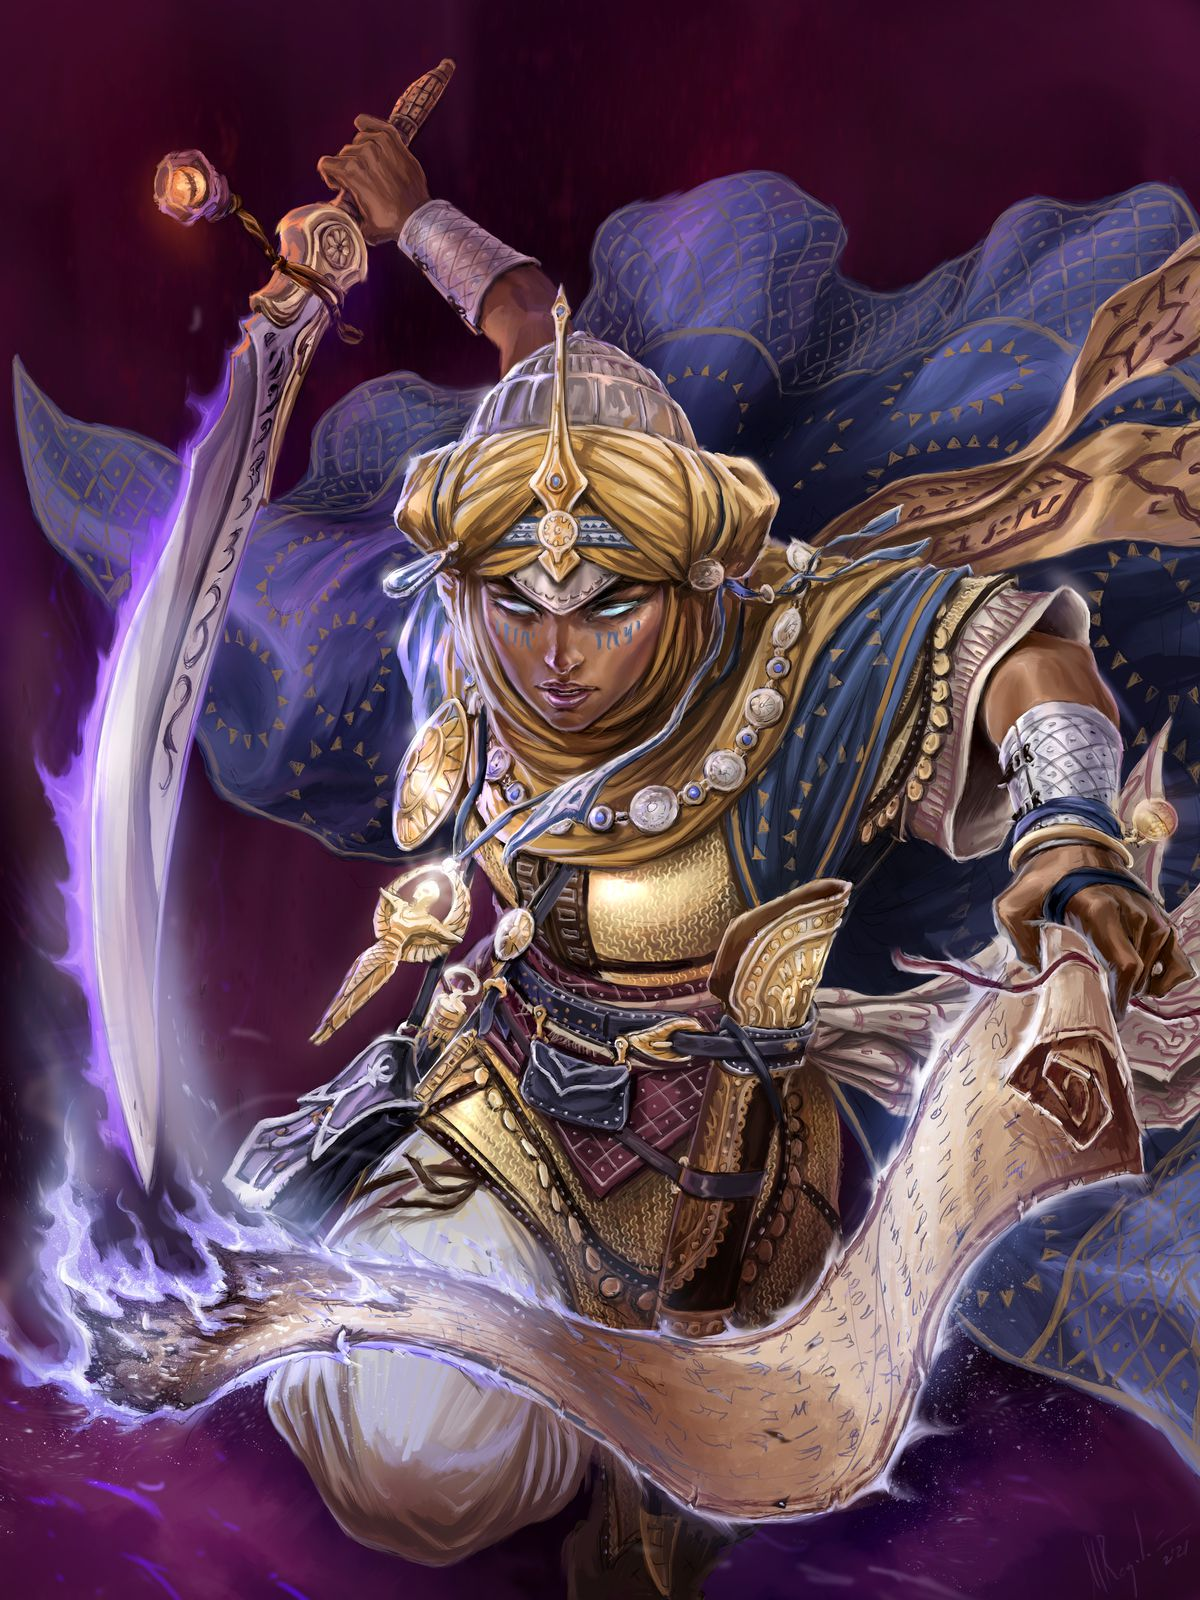 A woman dressed in golden armor with flowing blue ropes and a curving sword leaps out of the frame, a charged paper scroll burning in her hand.